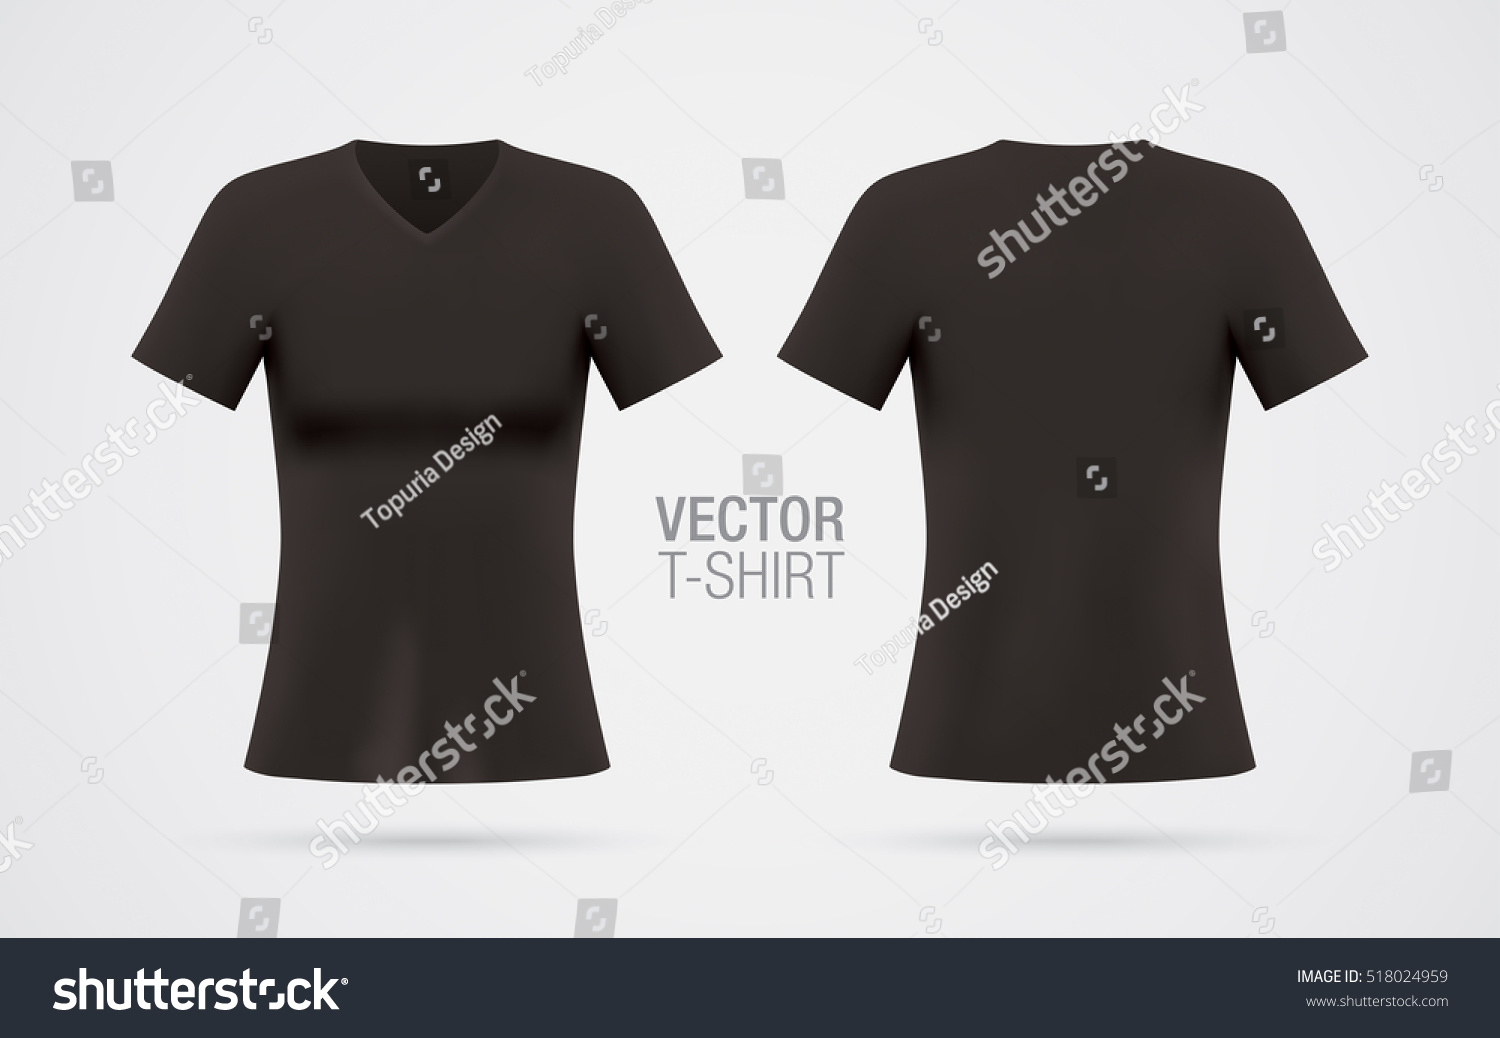 Black t shirt model template - Women S V Neck T Shirt Vector Template Short Sleeve Black T Shirt